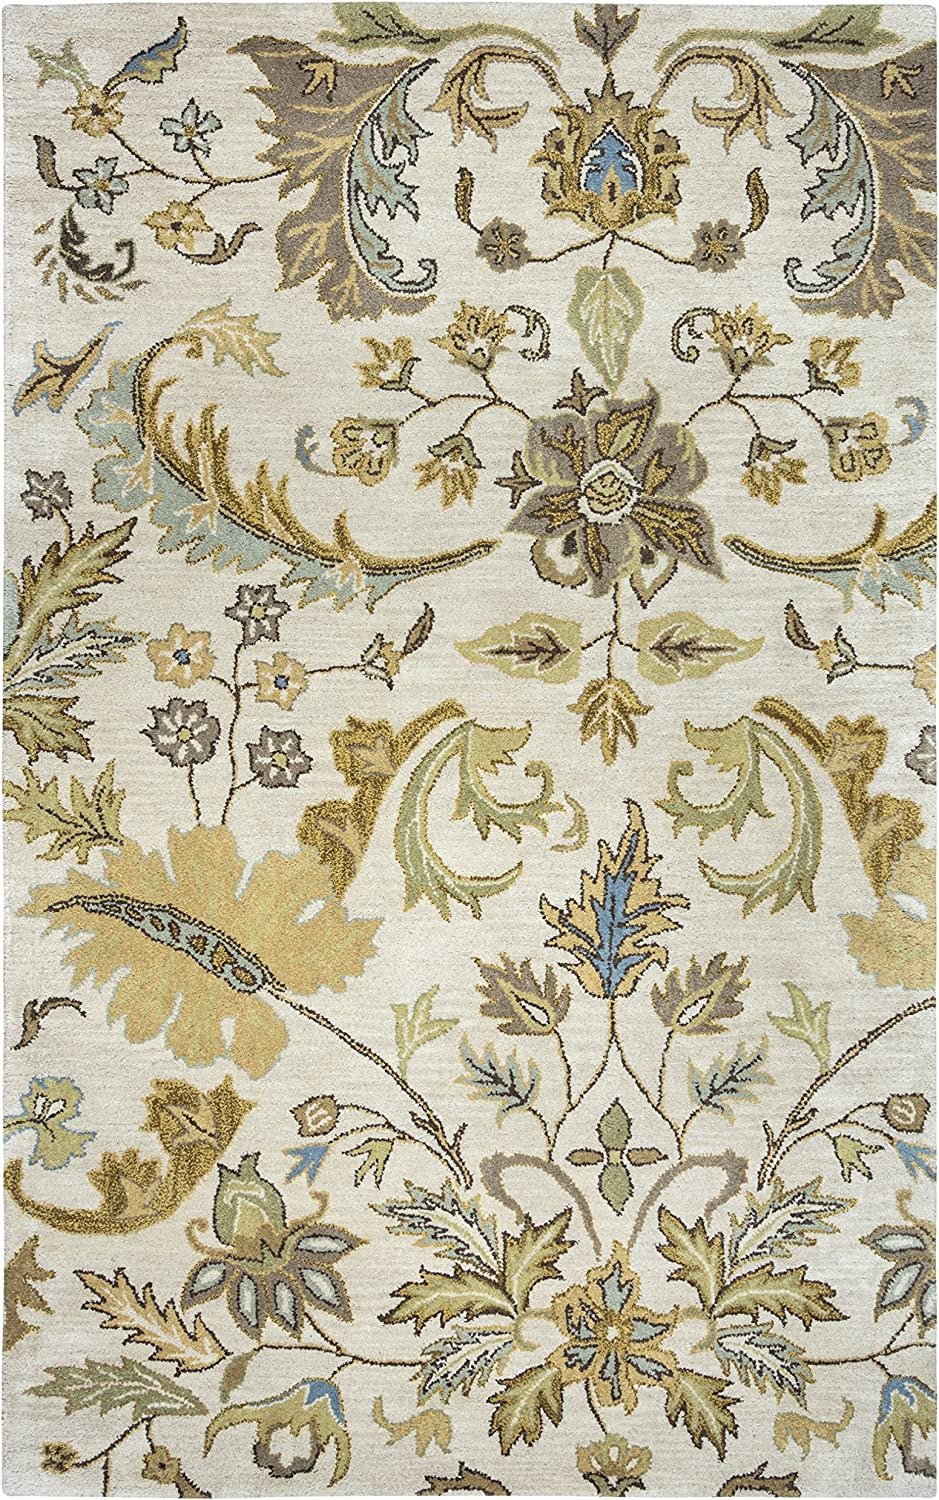 Rizzy Home Volare Collection Wool Area Rug, 5' x 8', Ivory/Sage/Khaki/Blue/Taupe Floral